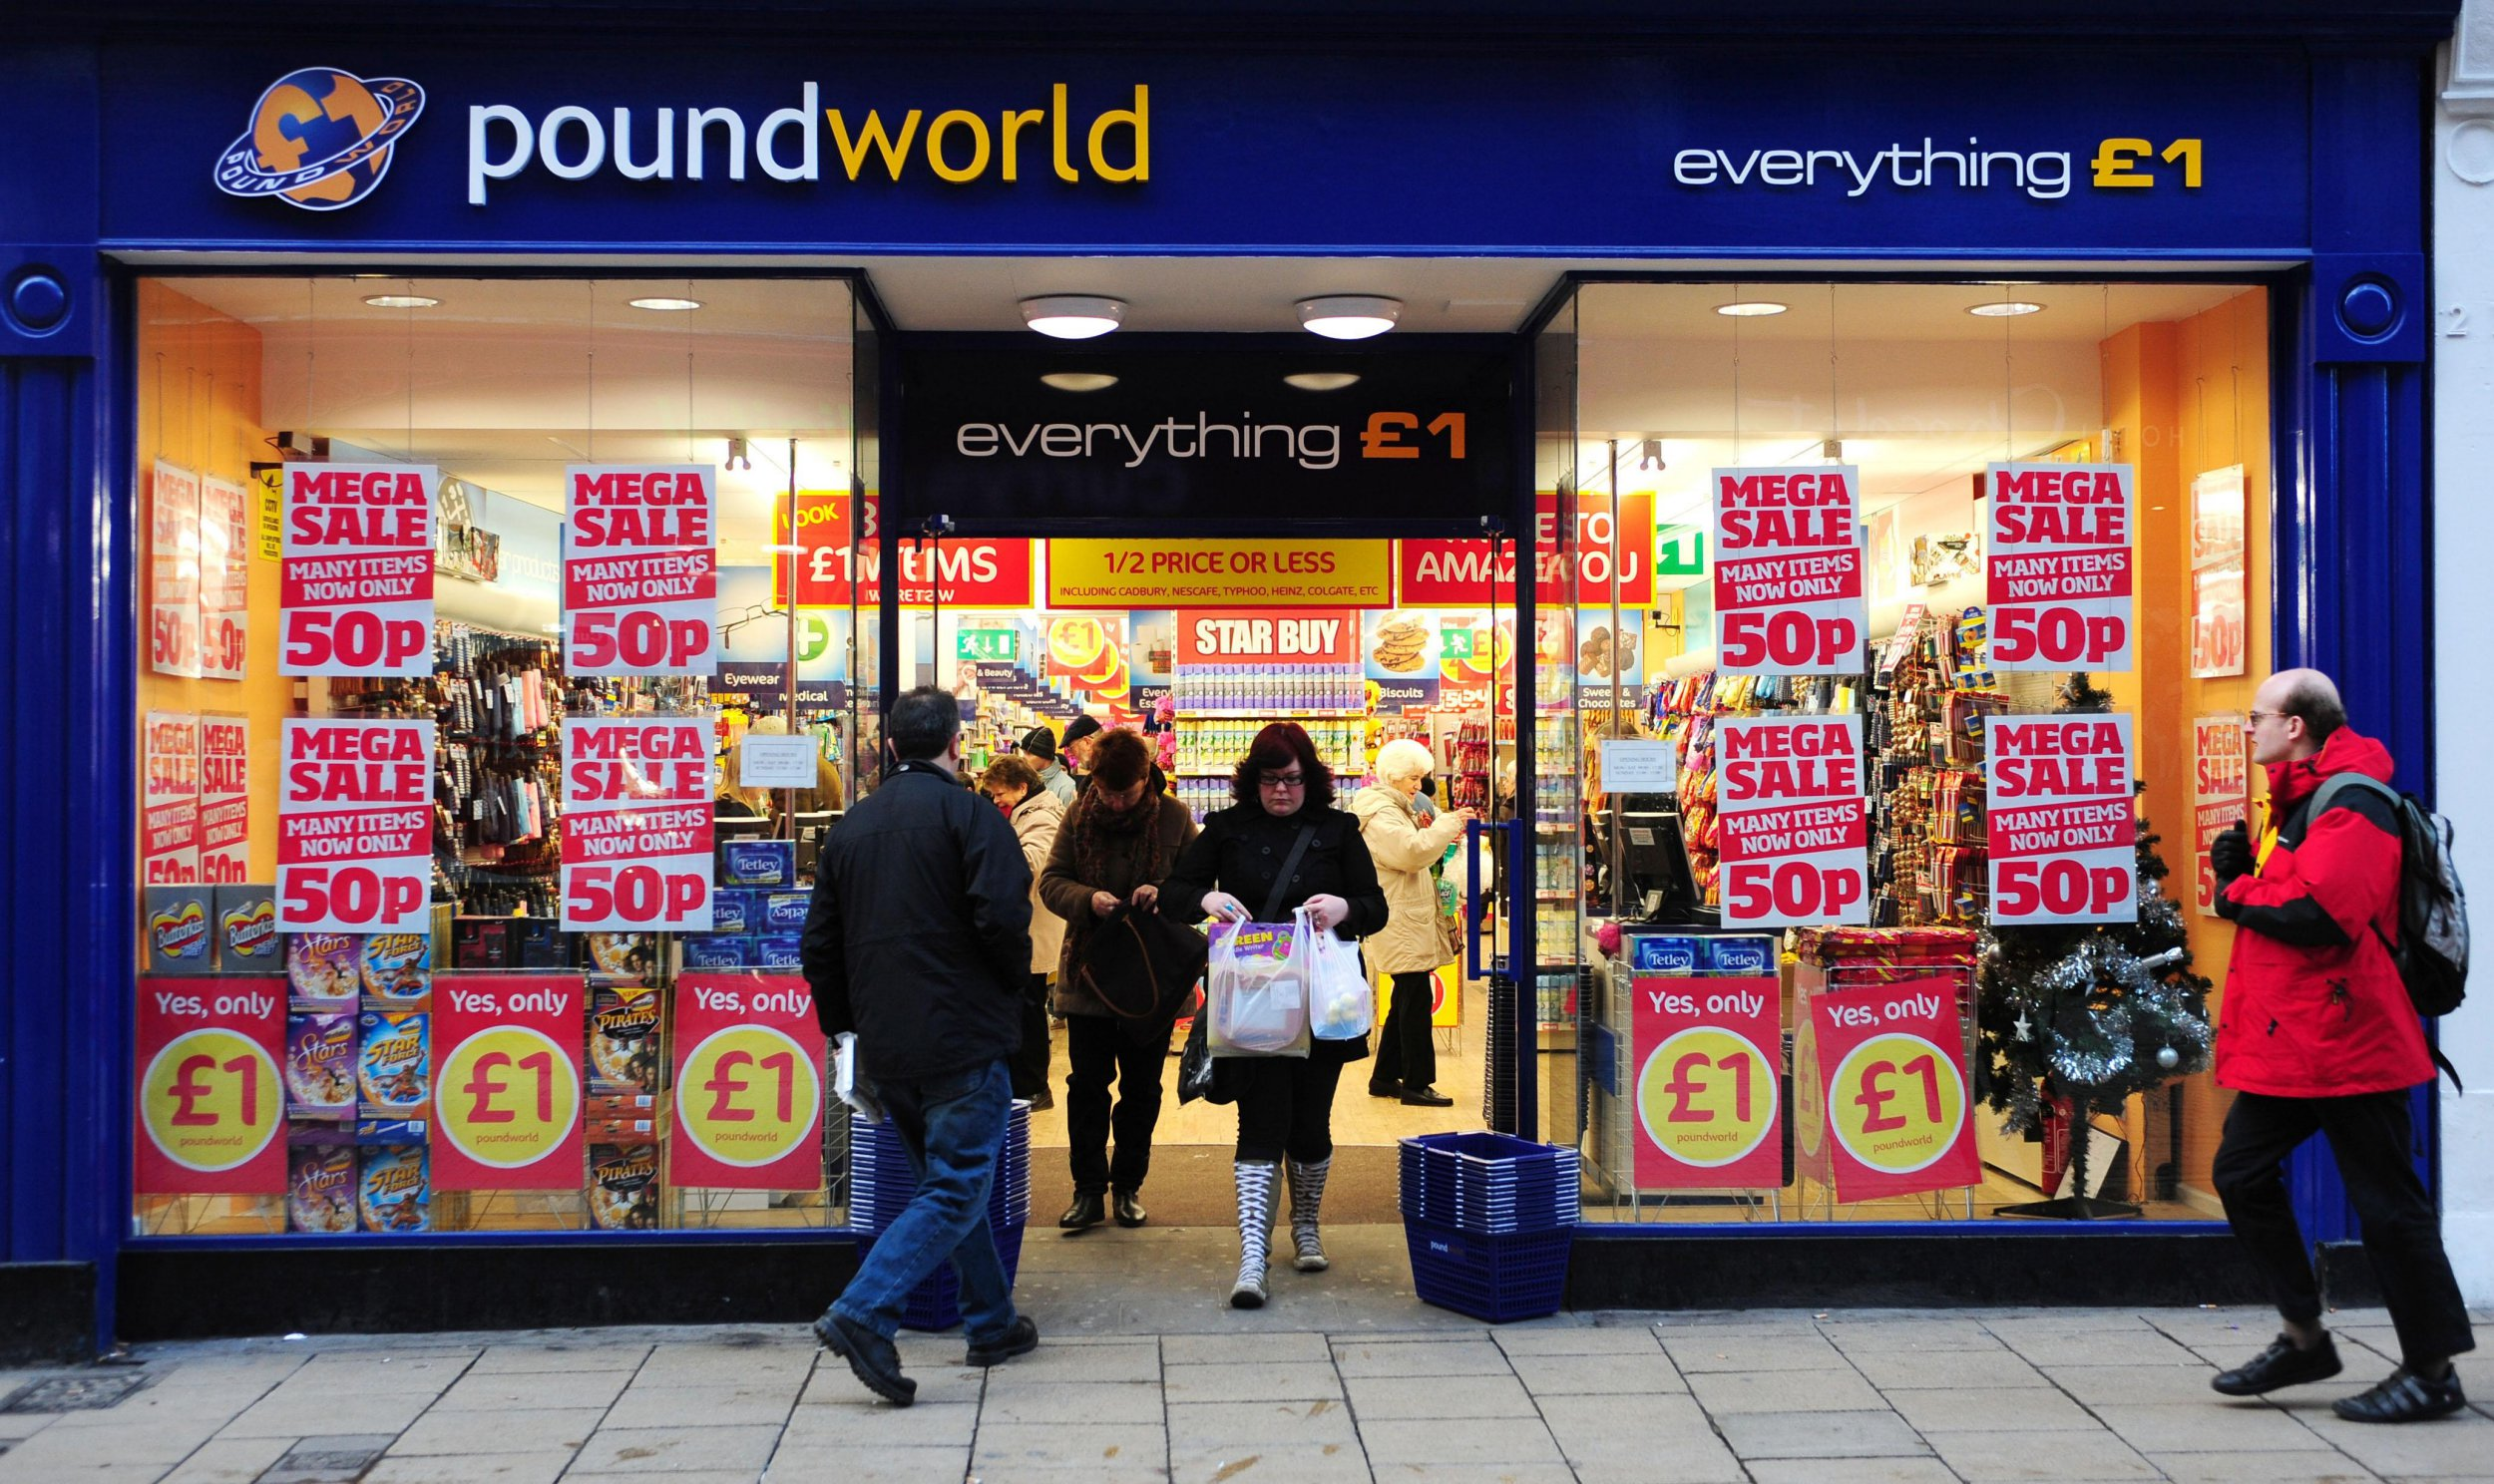 Poundworld on brink of collapse putting 5,300 jobs at risk